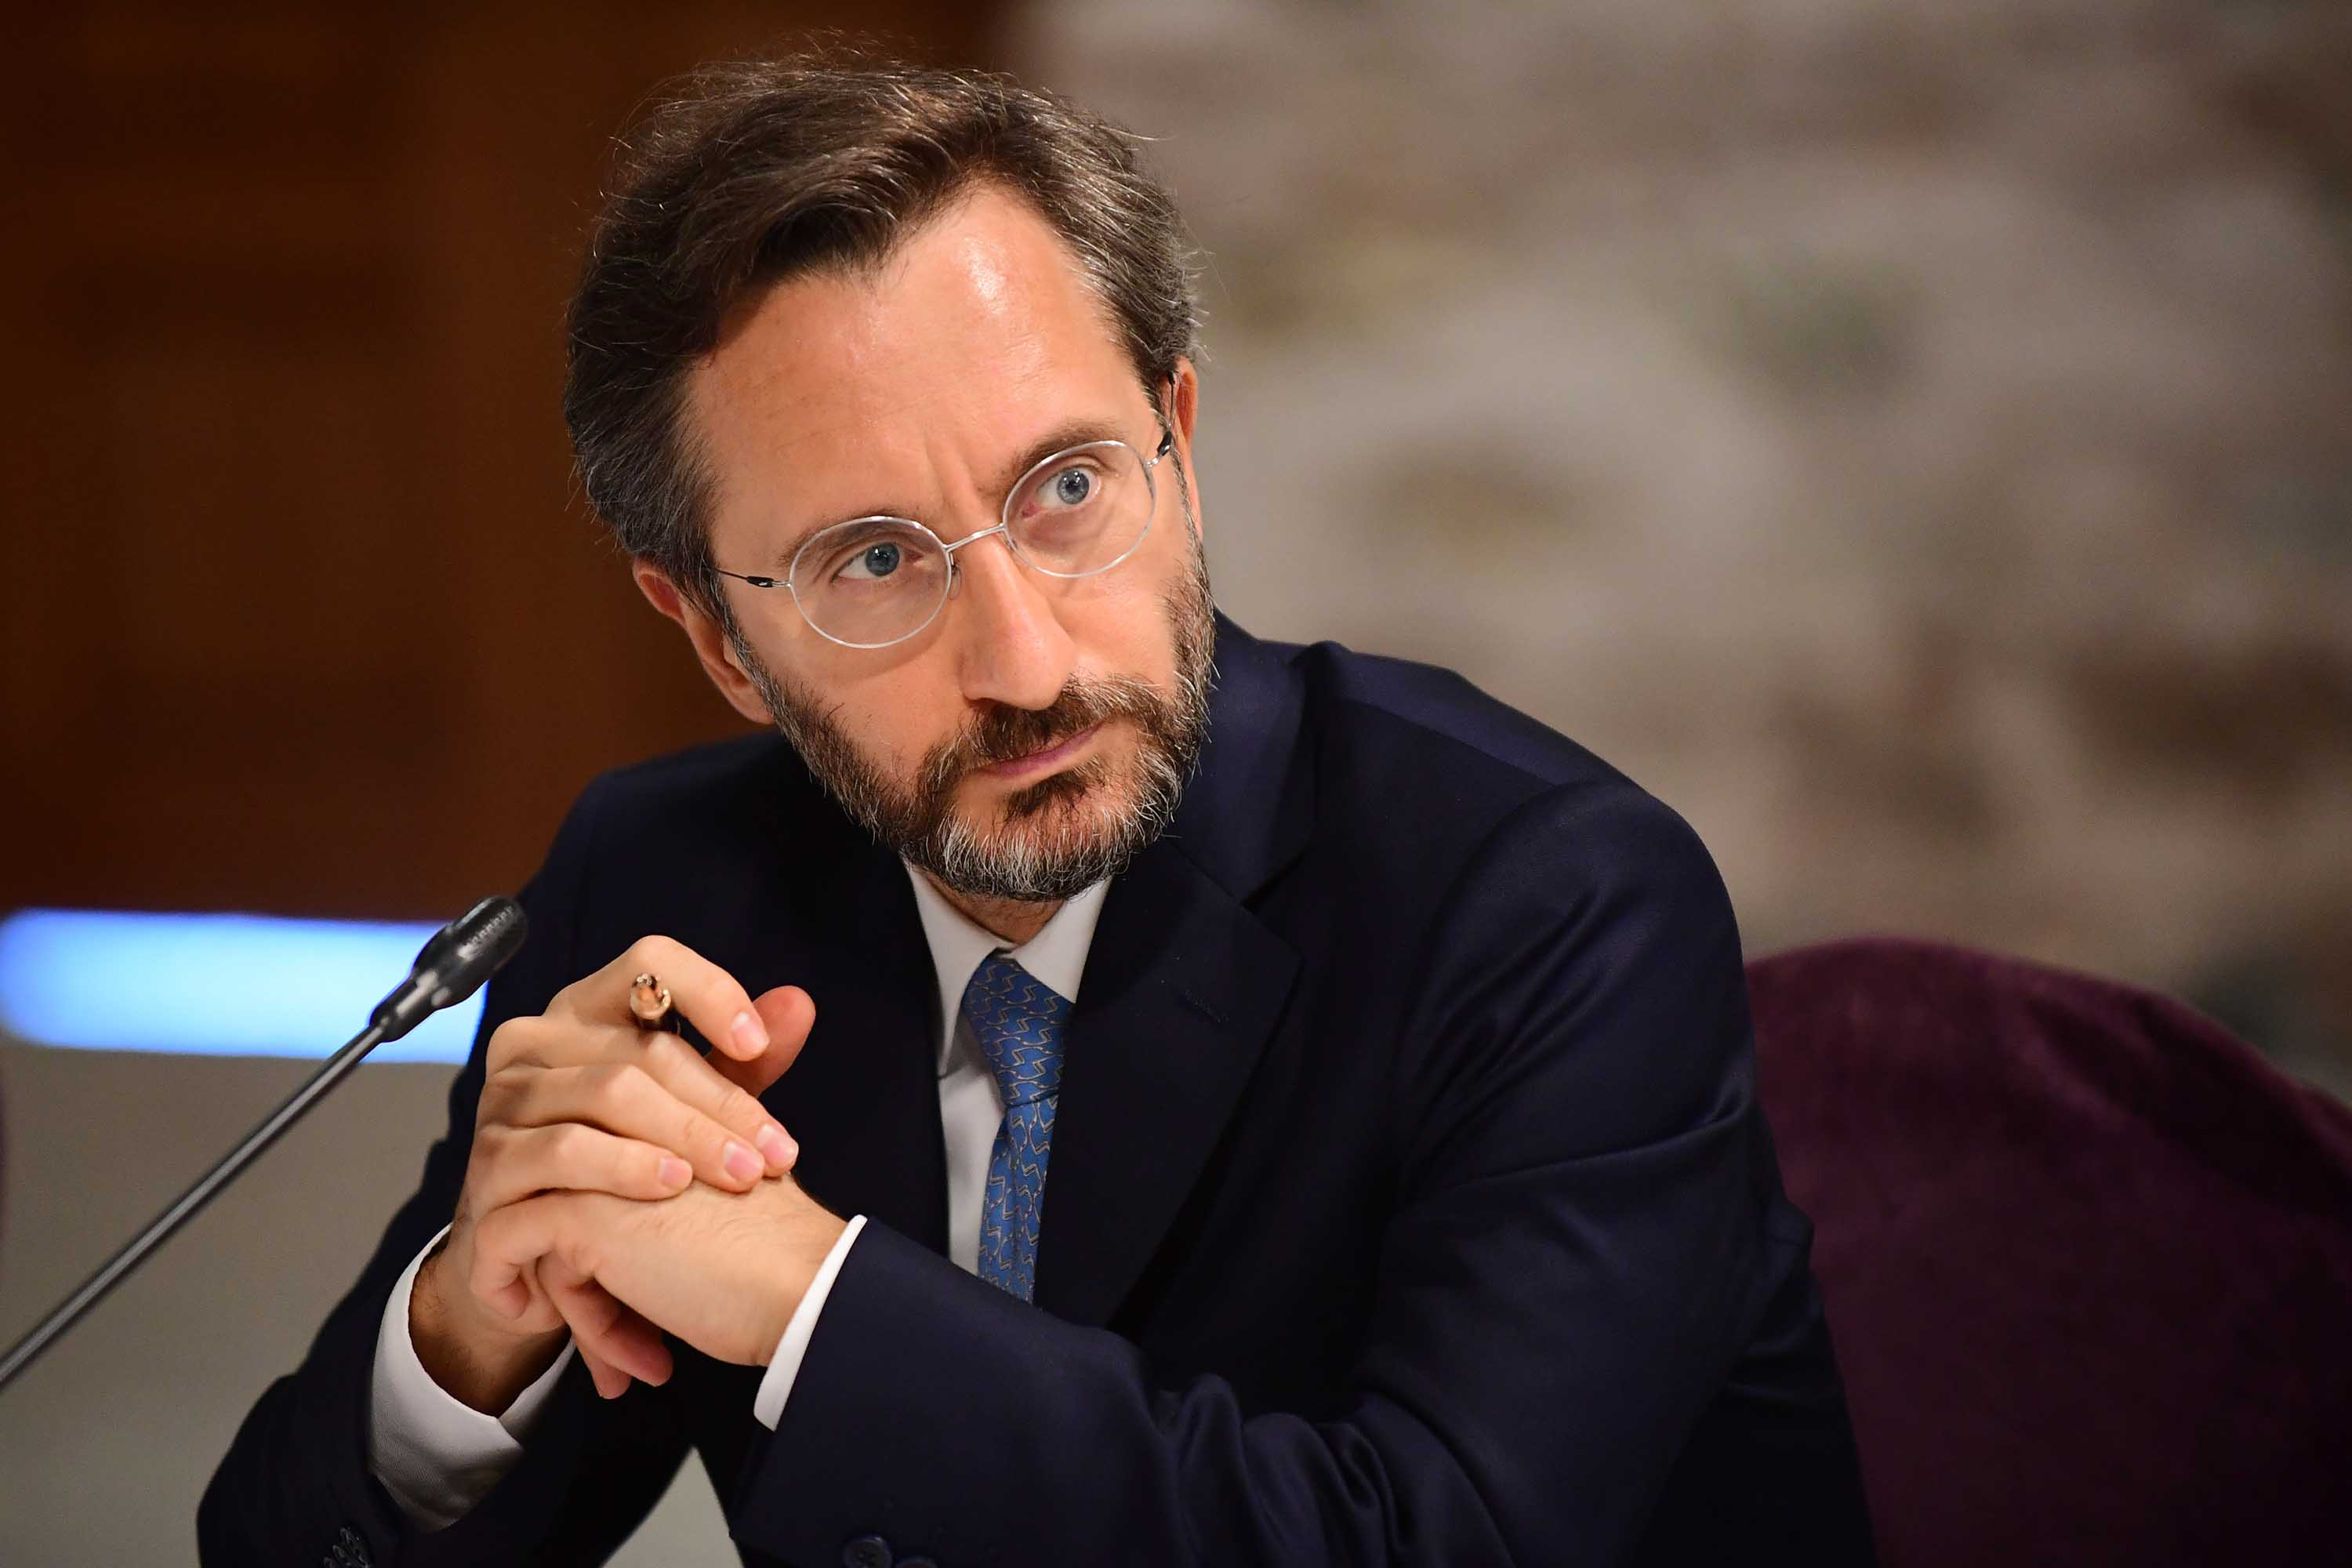 Turkey's Communications Director Fahrettin Altun is pictured during a meeting in Istanbul, Turkey on September 7.